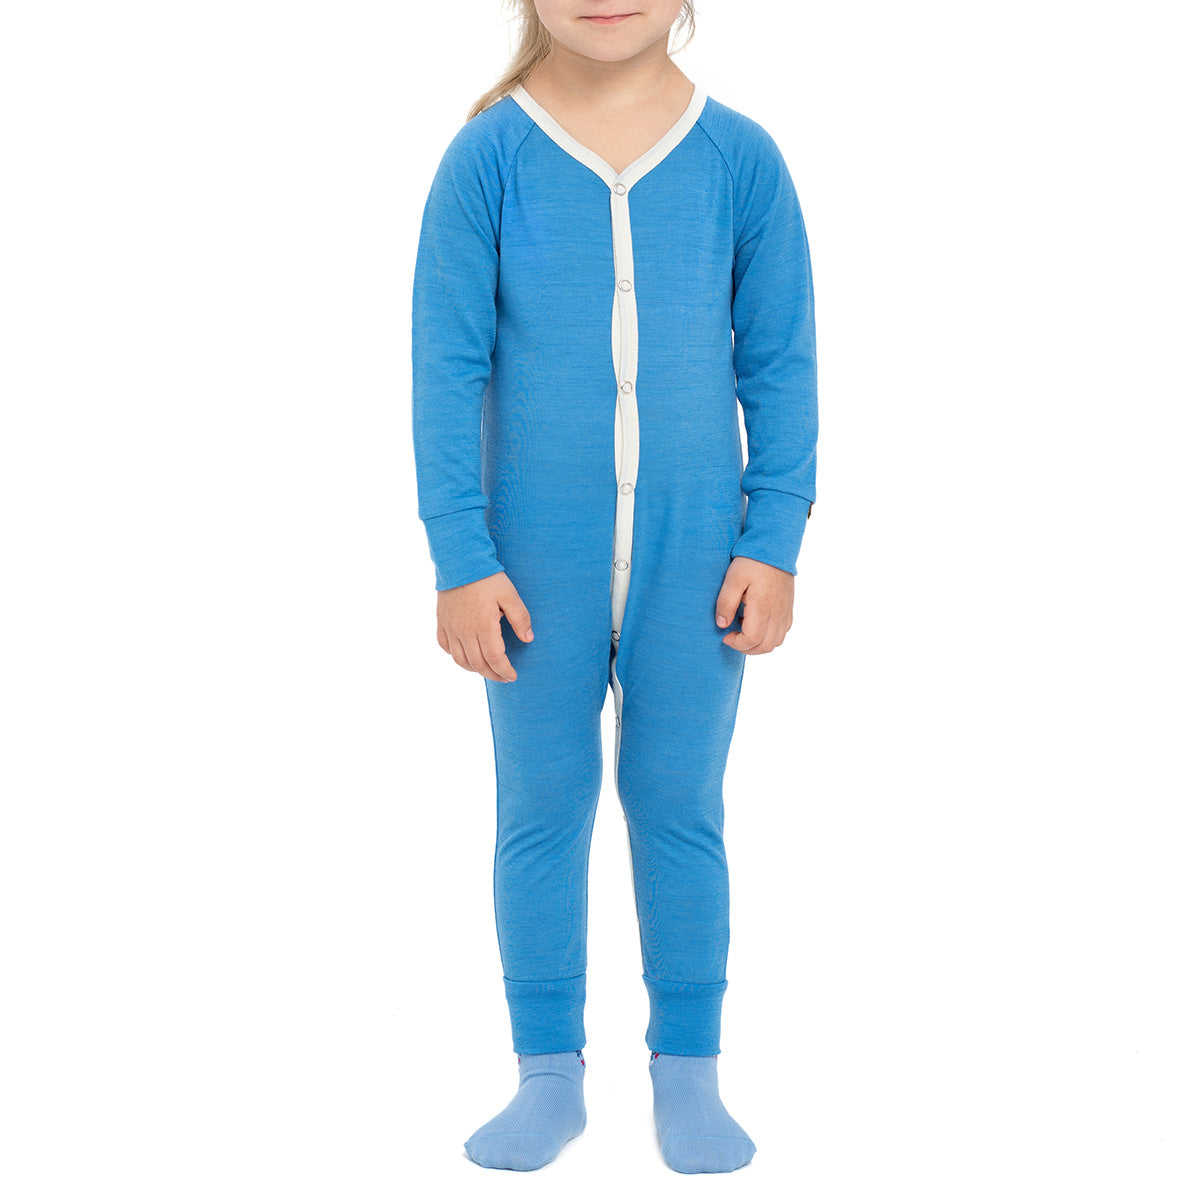 menique Kids' Merino 160 Romper Light Blue Color